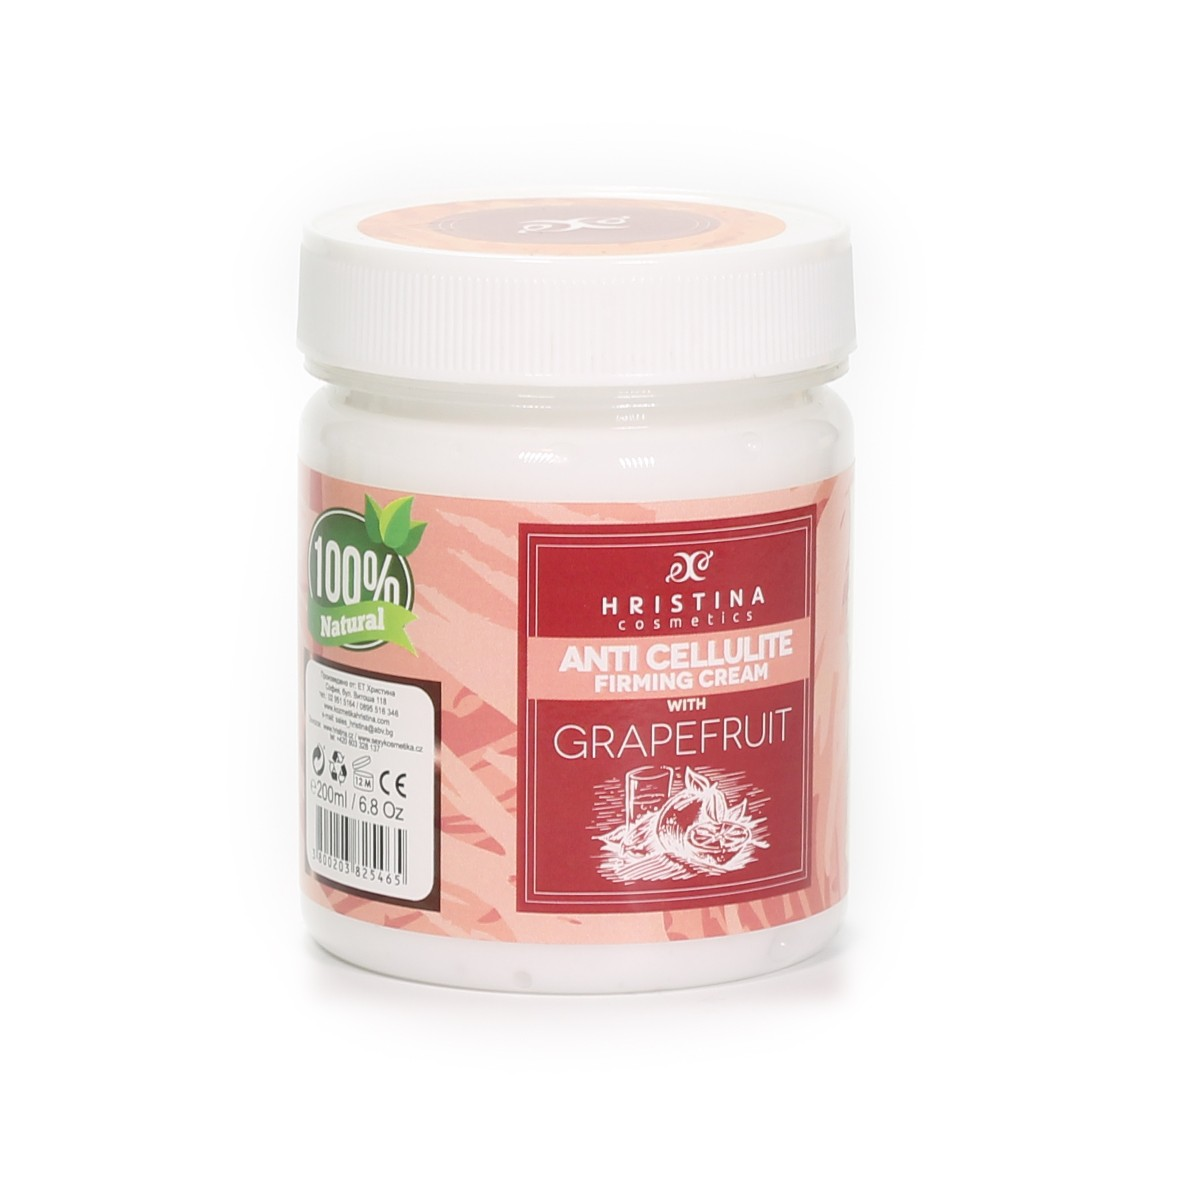 Anti-cellulite cream with grapefruit Hristina Cosmetics